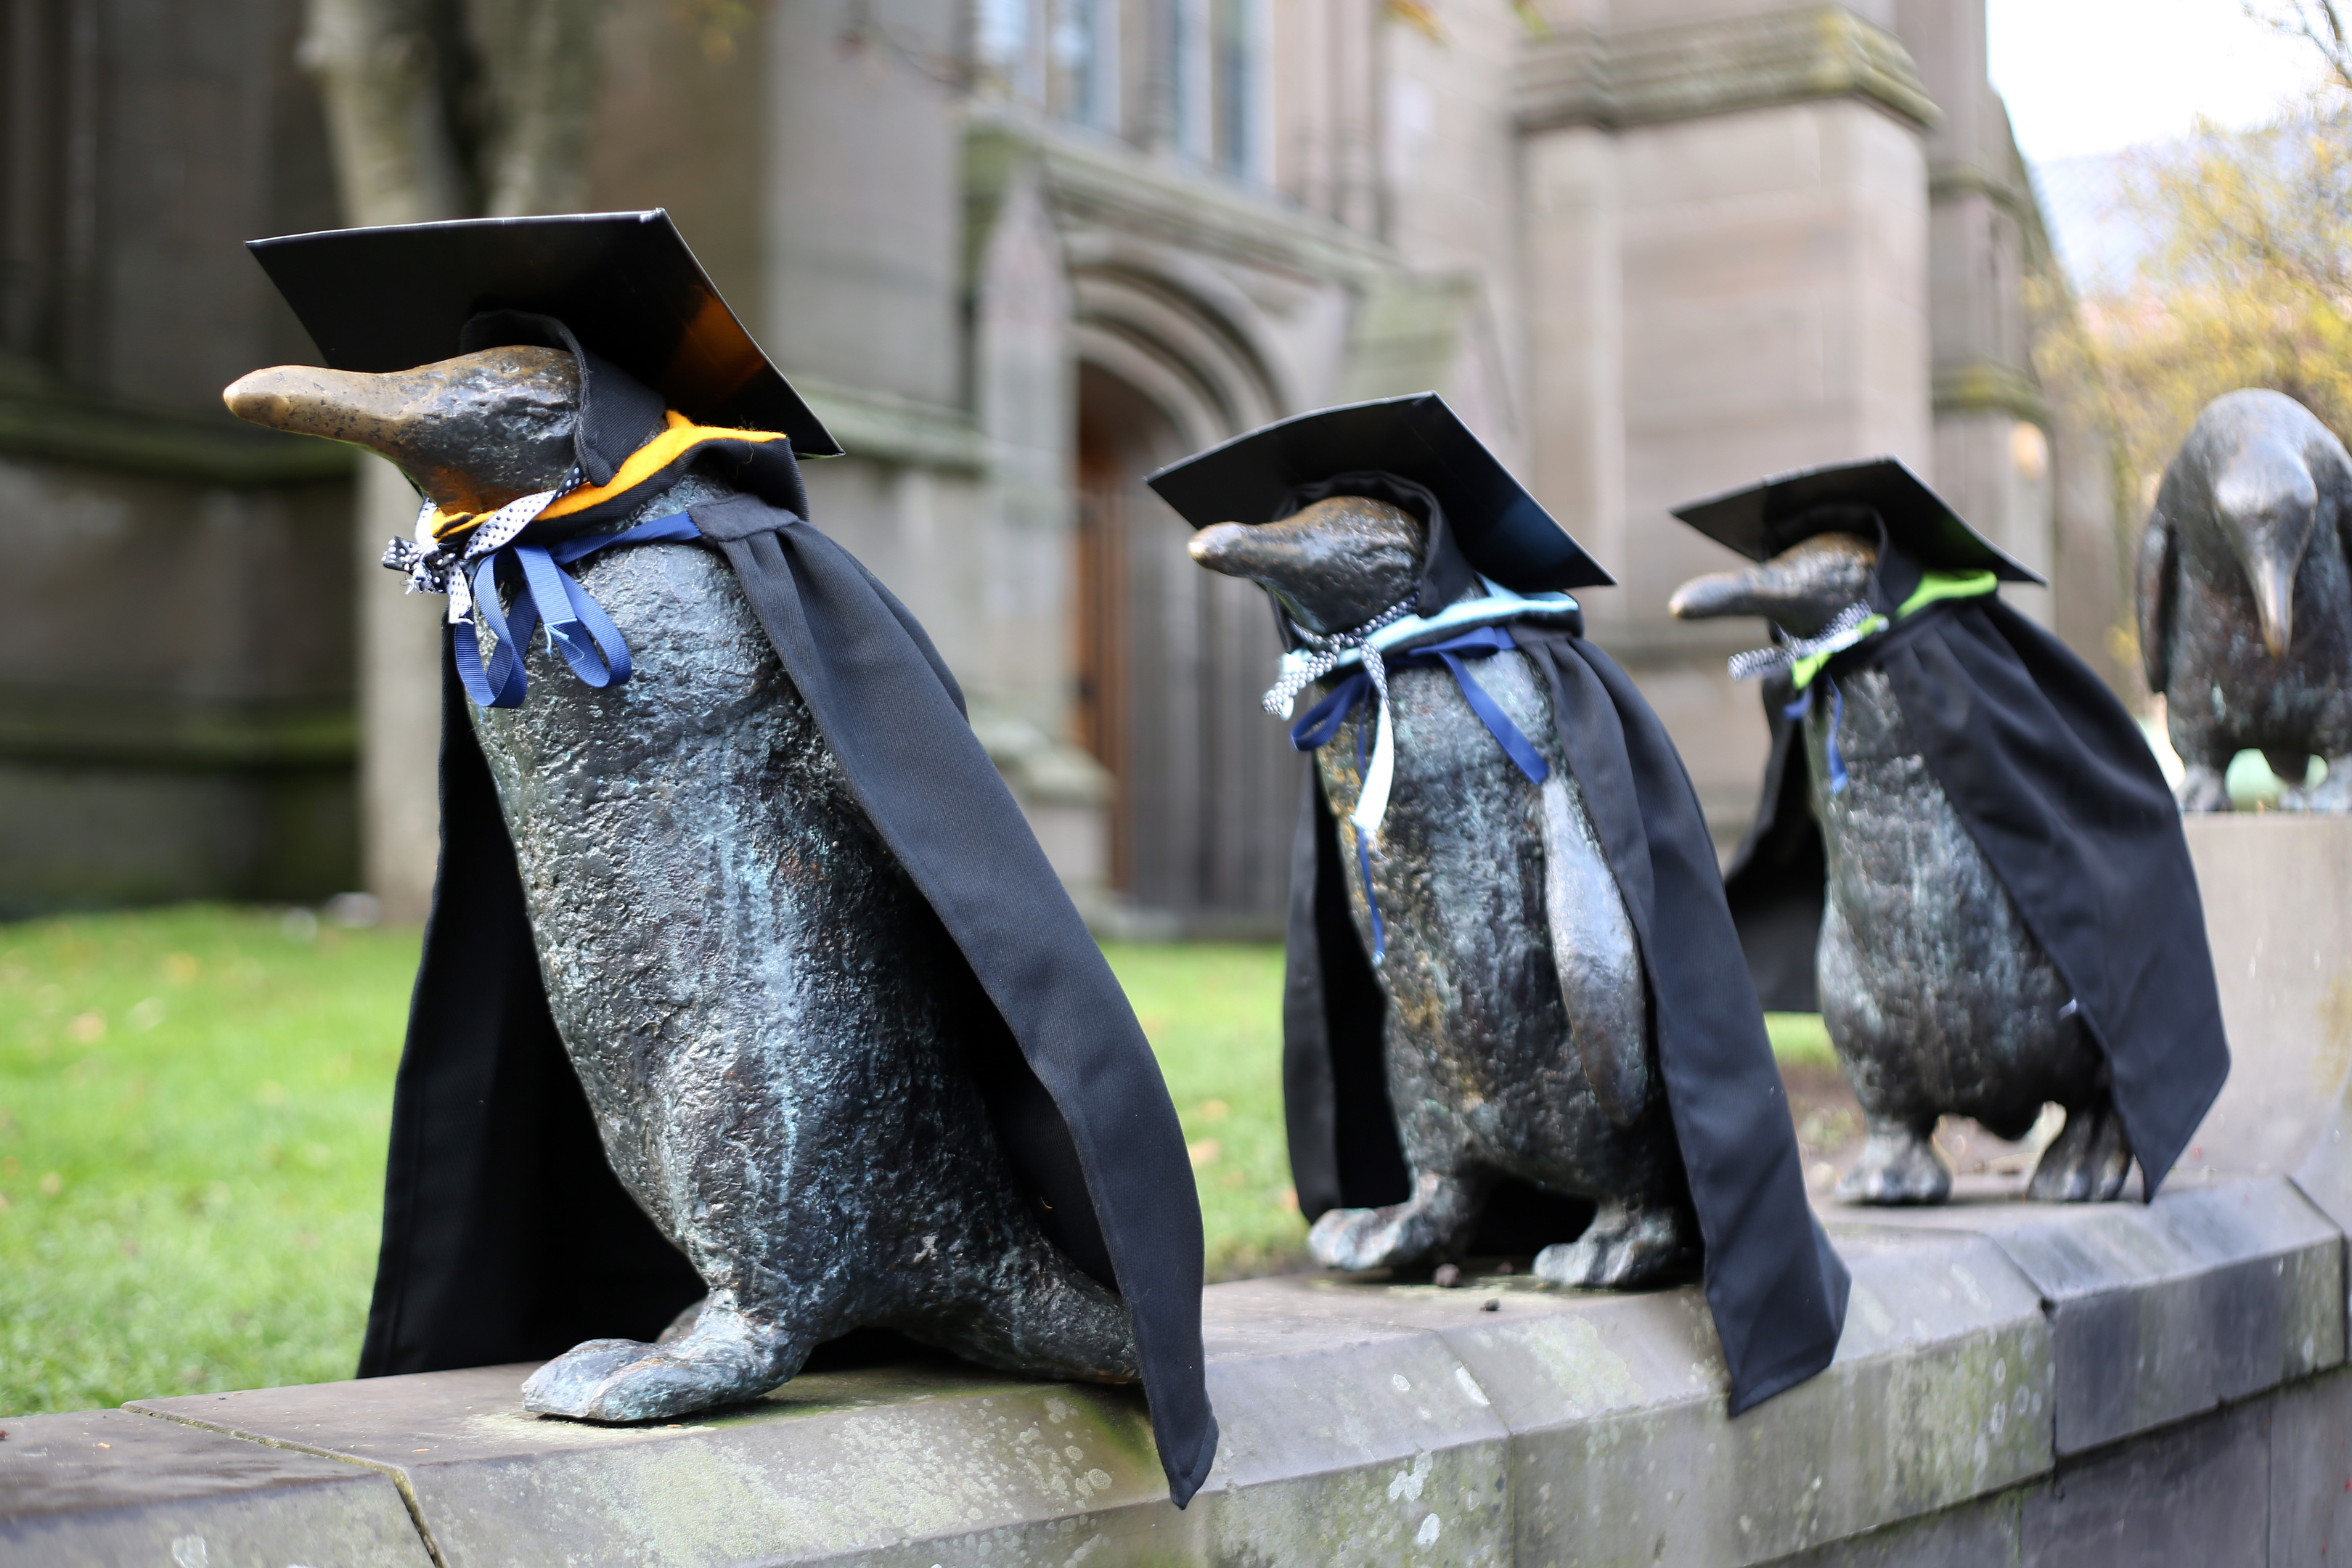 Dundee's penguins mark the arrival of winter graduation season in 2017